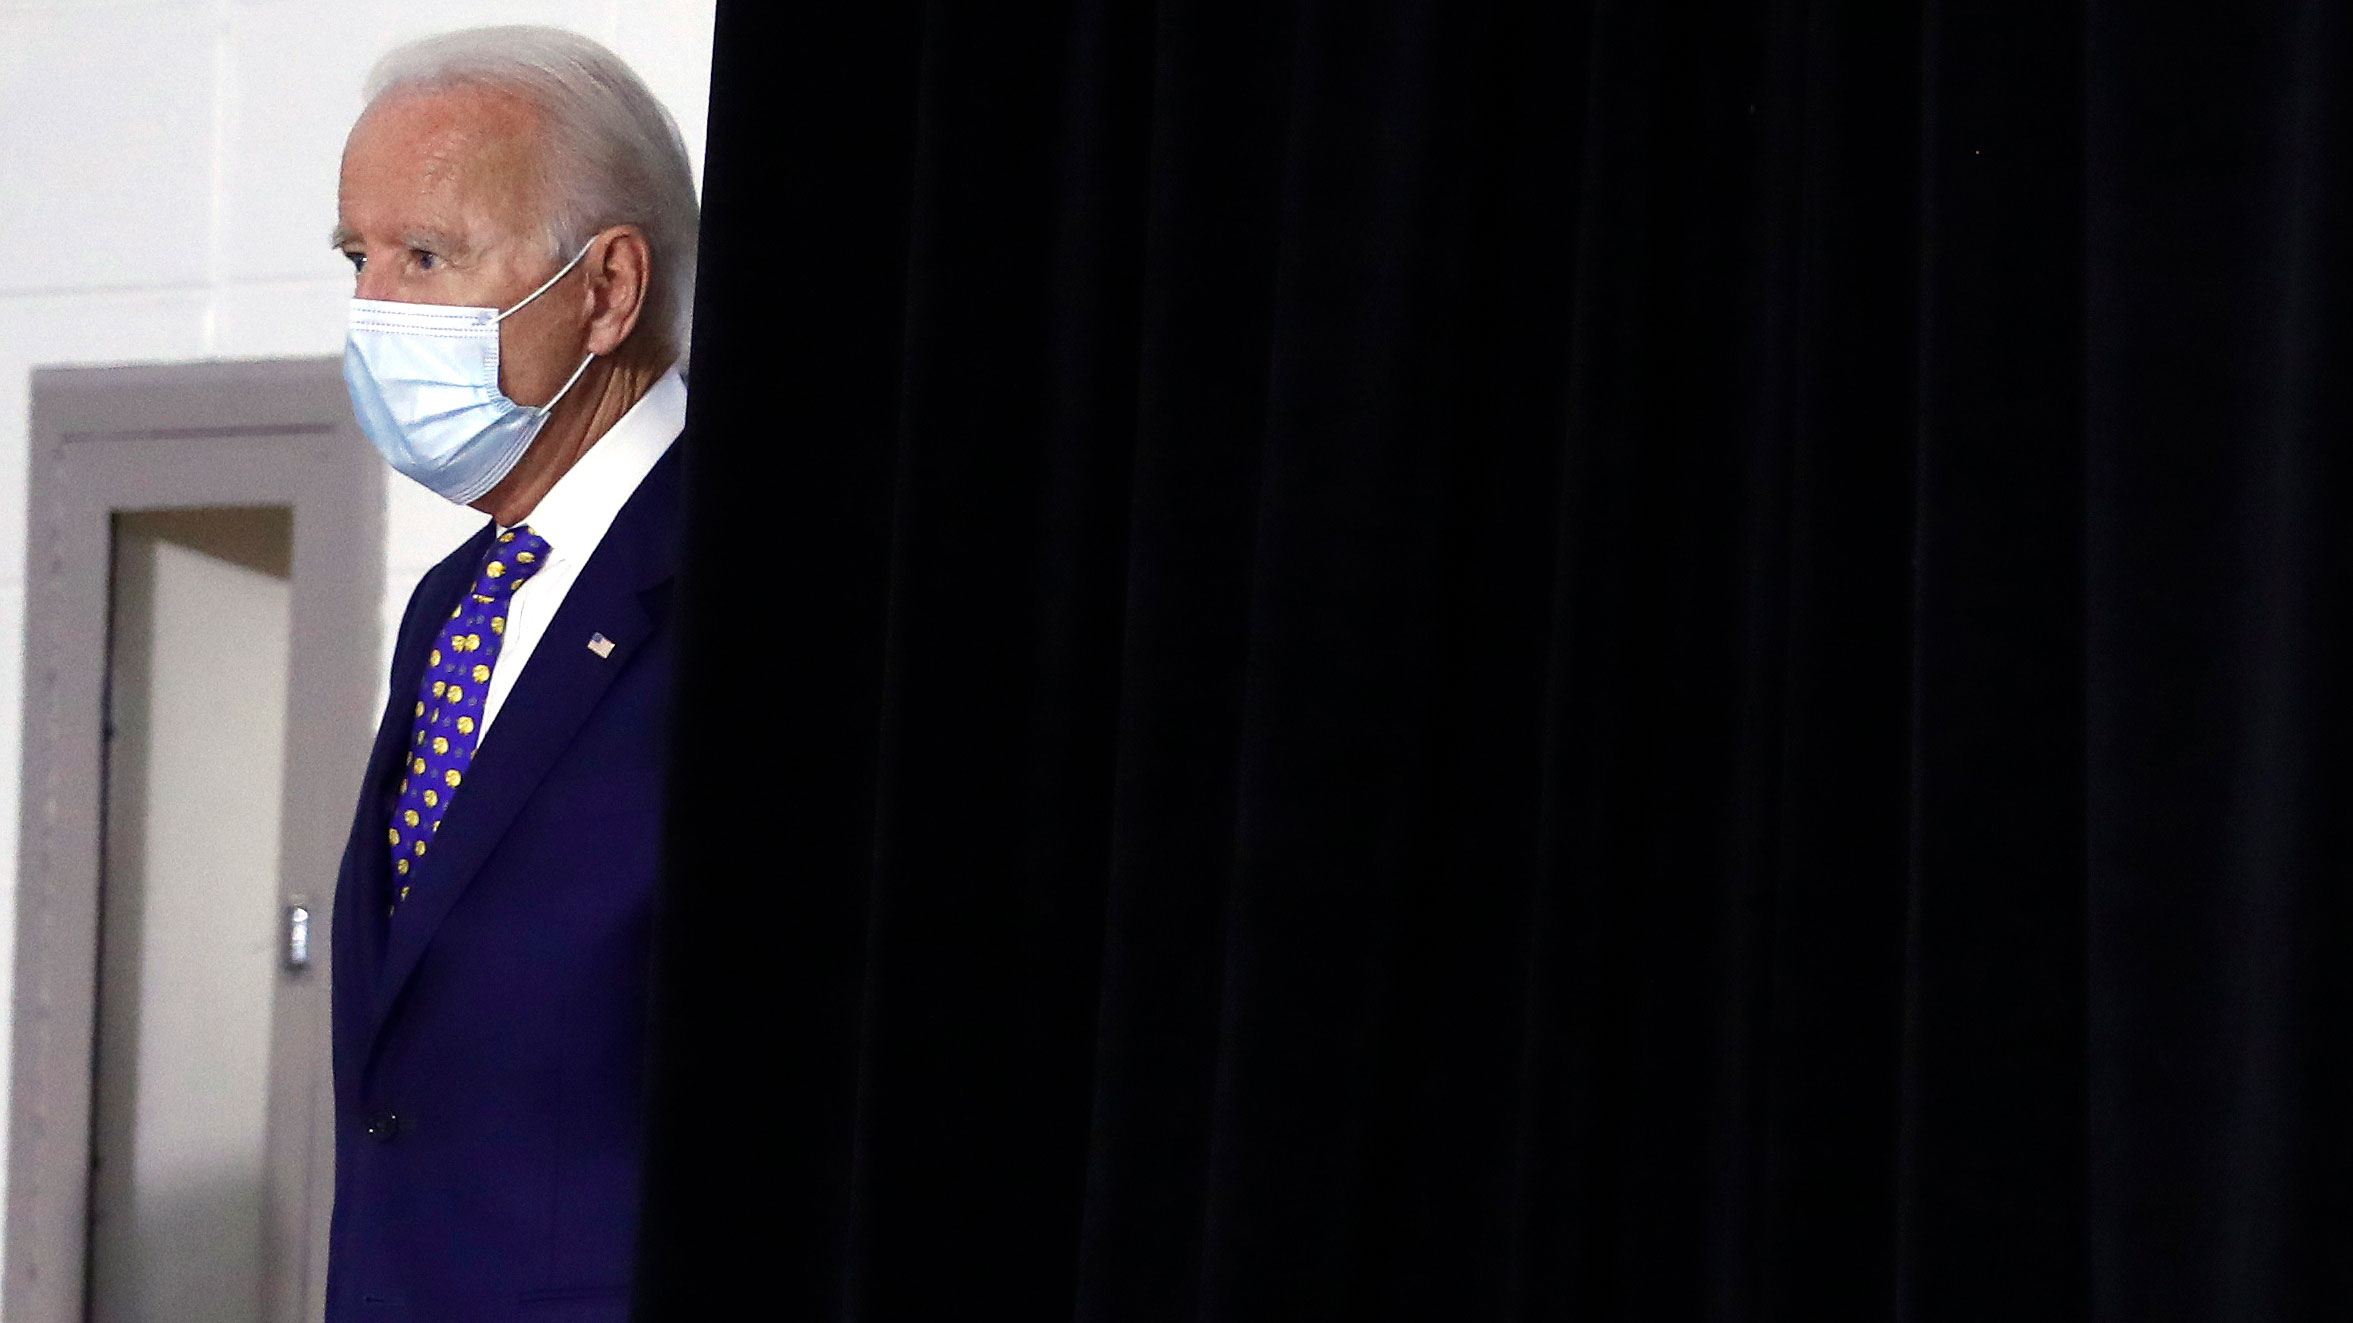 Joe Biden arrives at his campaign event in Wilmington, Delaware, on Tuesday.